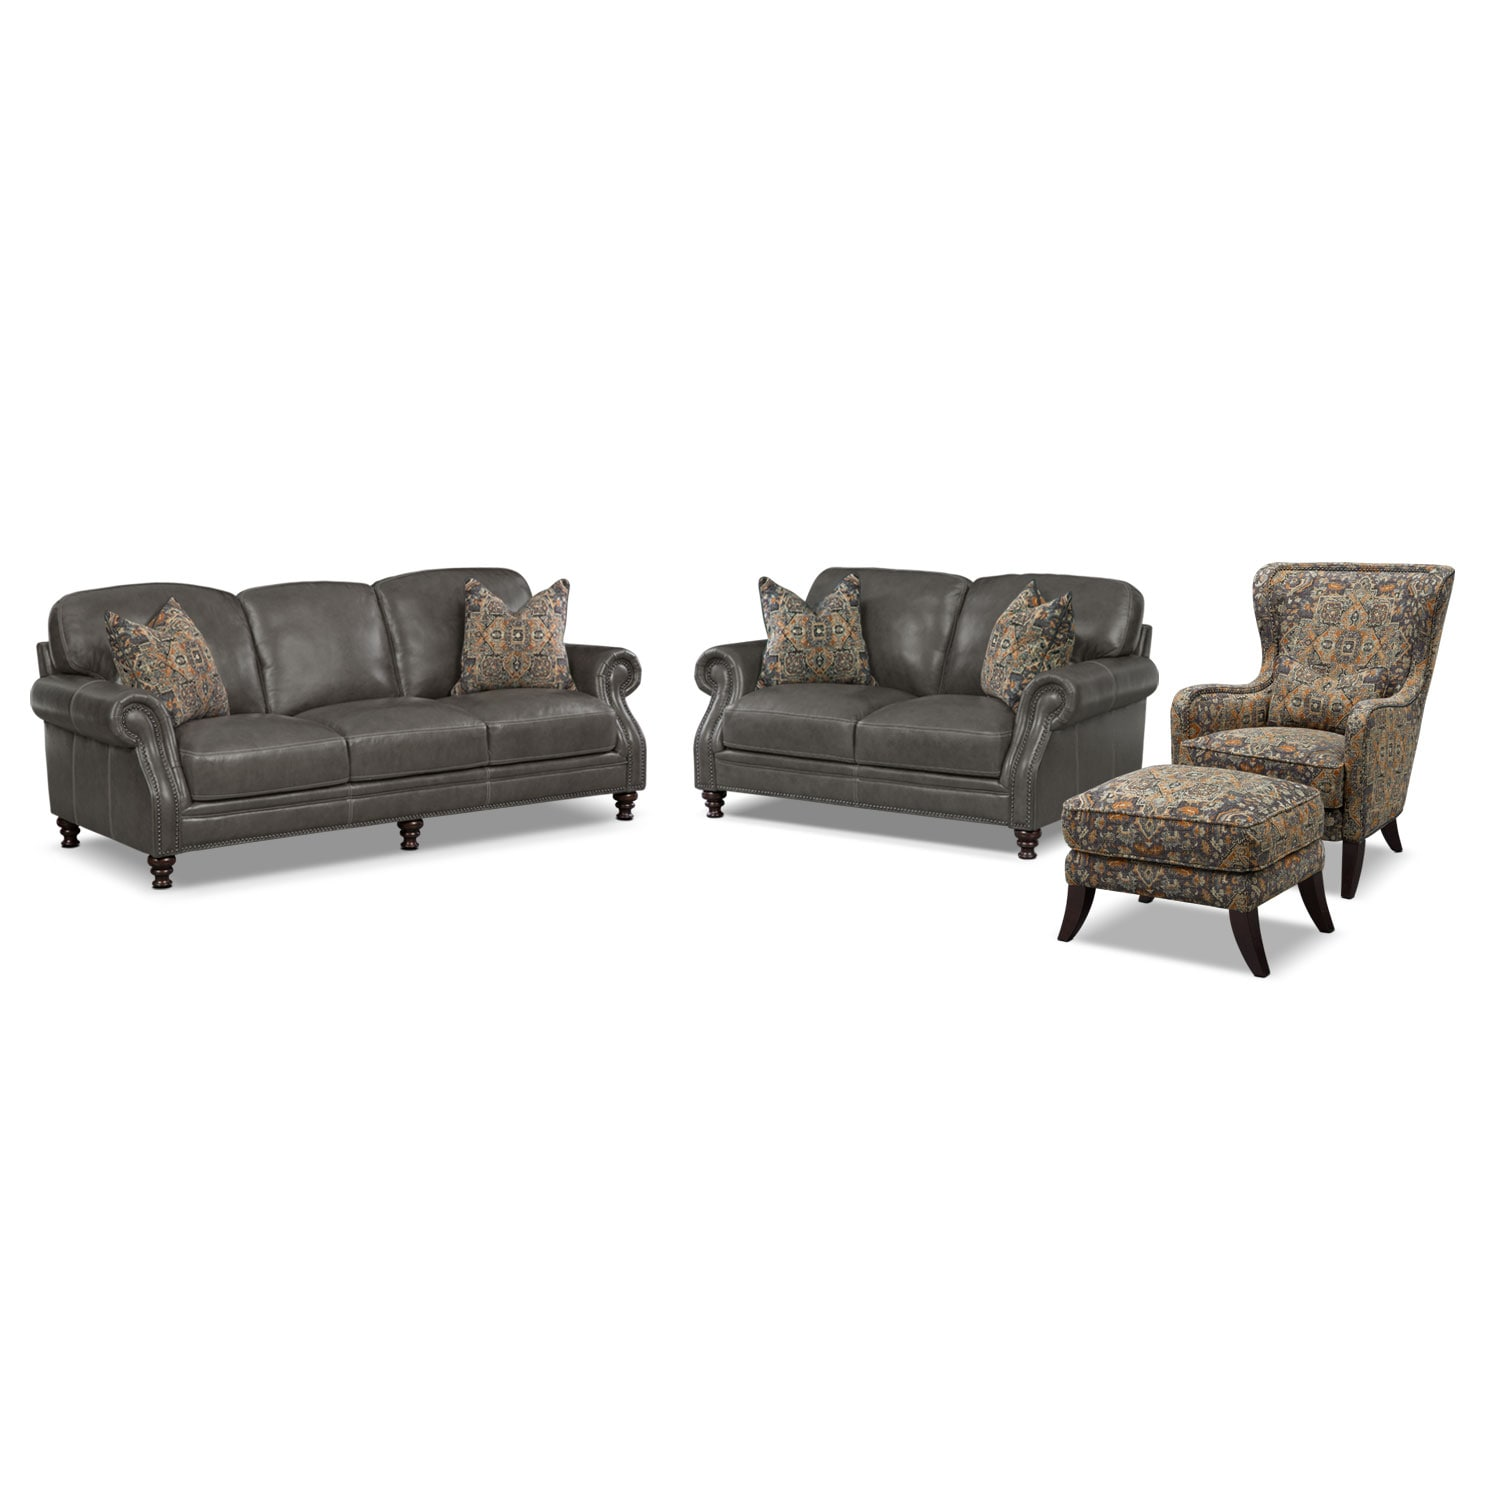 [Carrington Charcoal 4 Pc. Living Room]